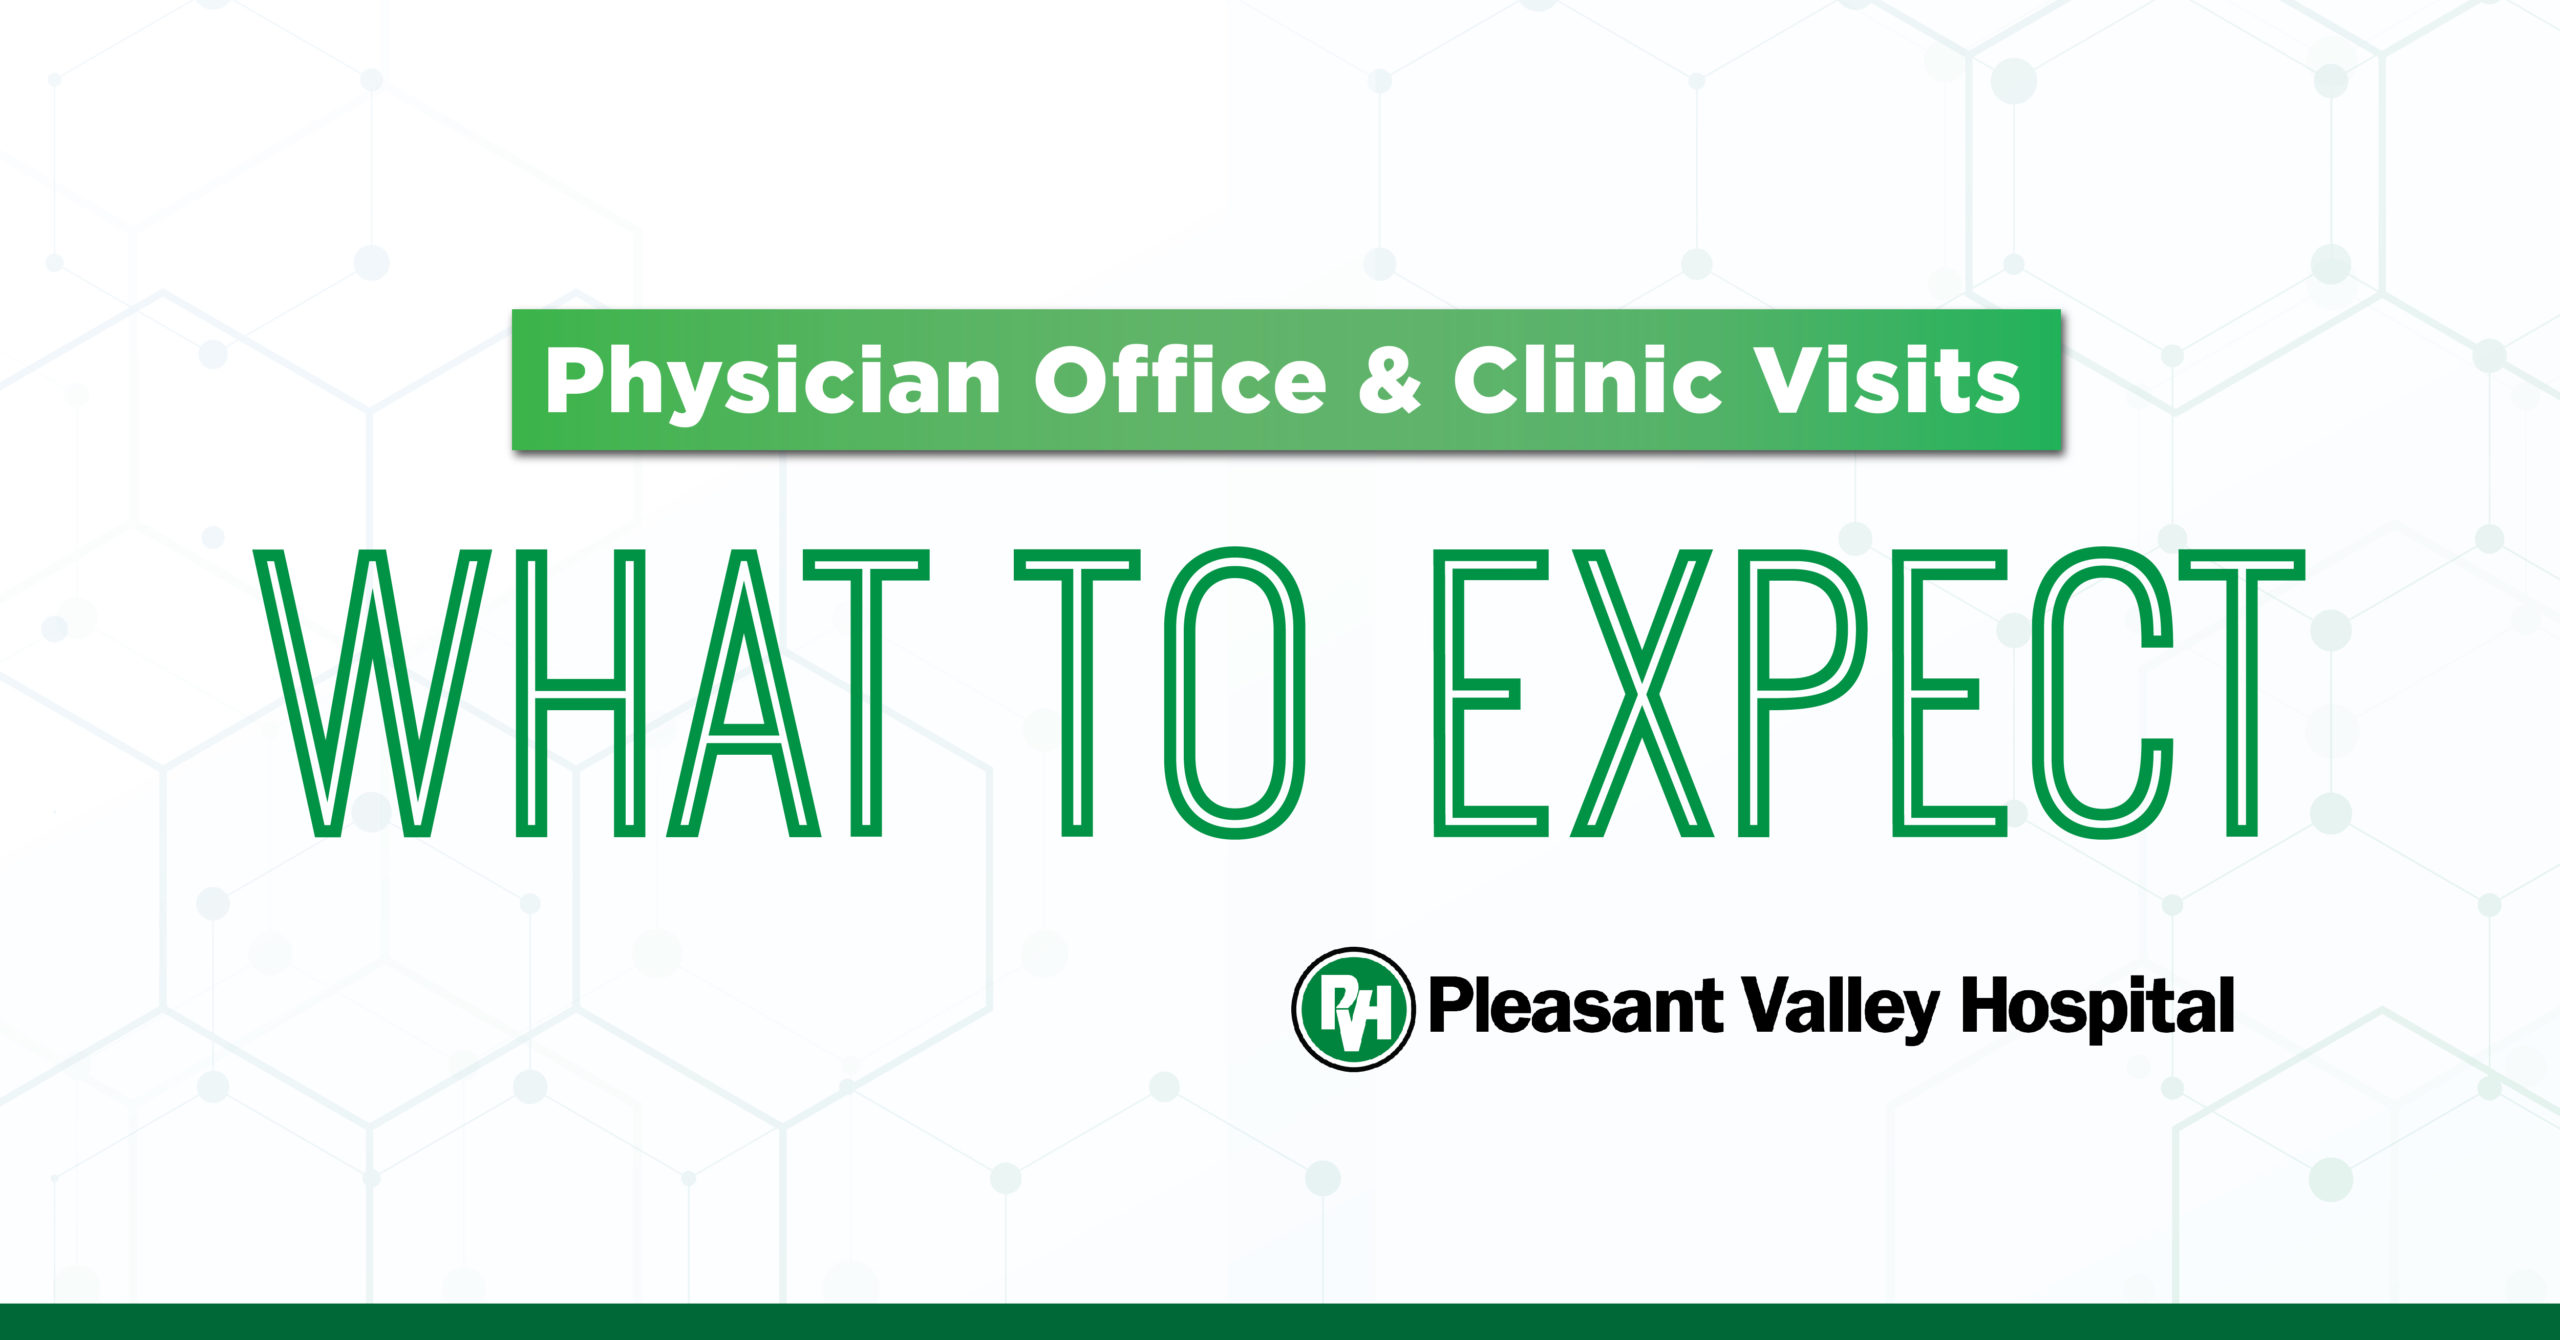 Physician Office & Clinic Visits What to Expect Pleasant Valley Hospital